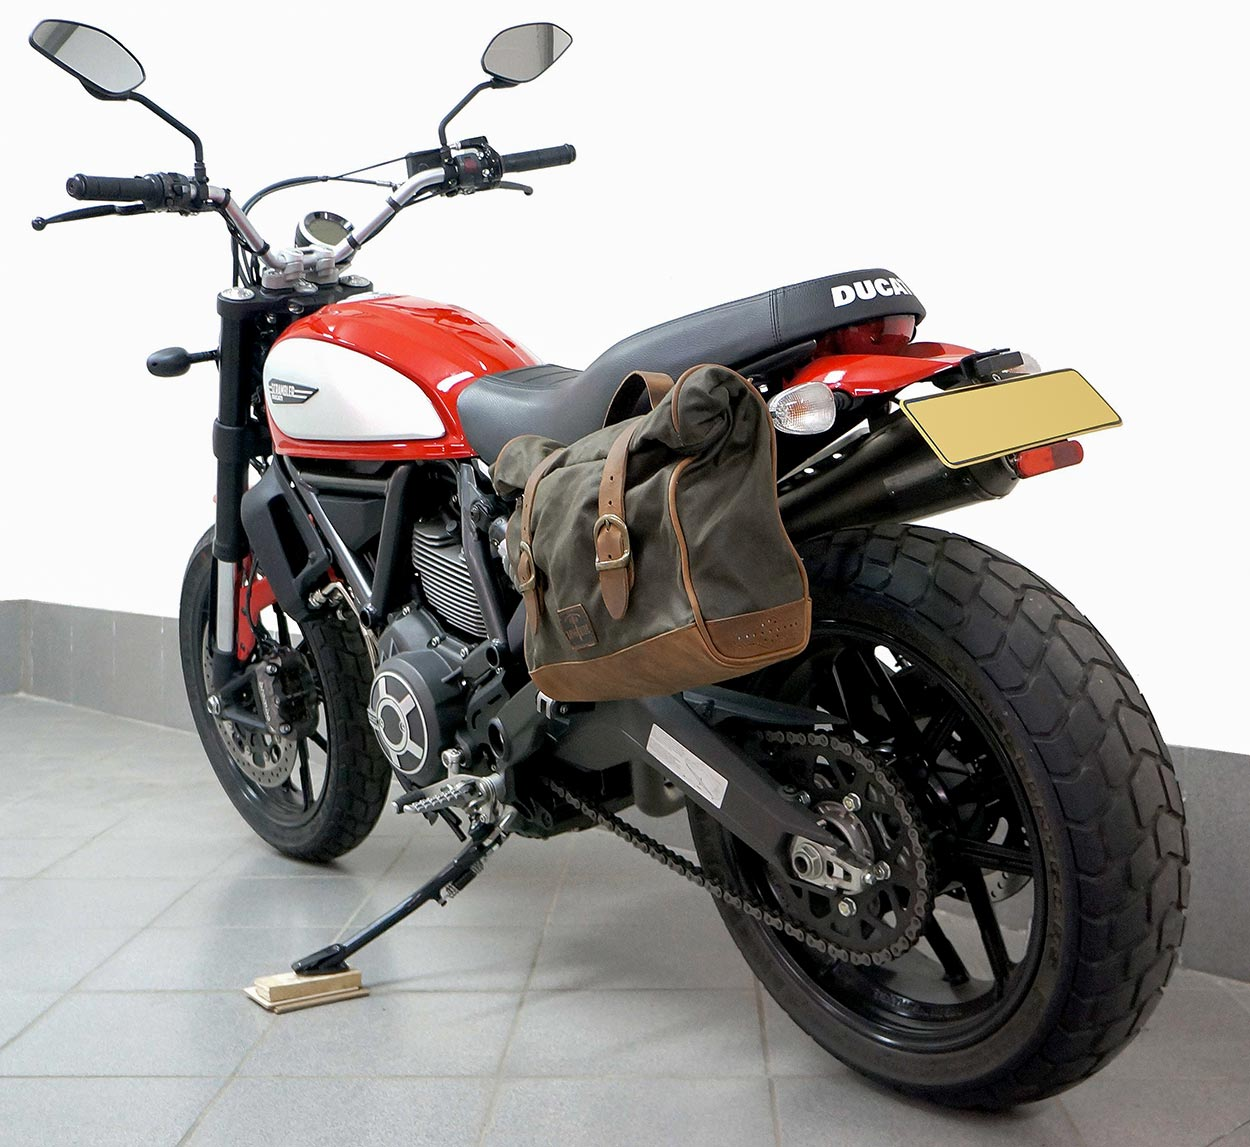 Saddlebag on red ducati scrambler.